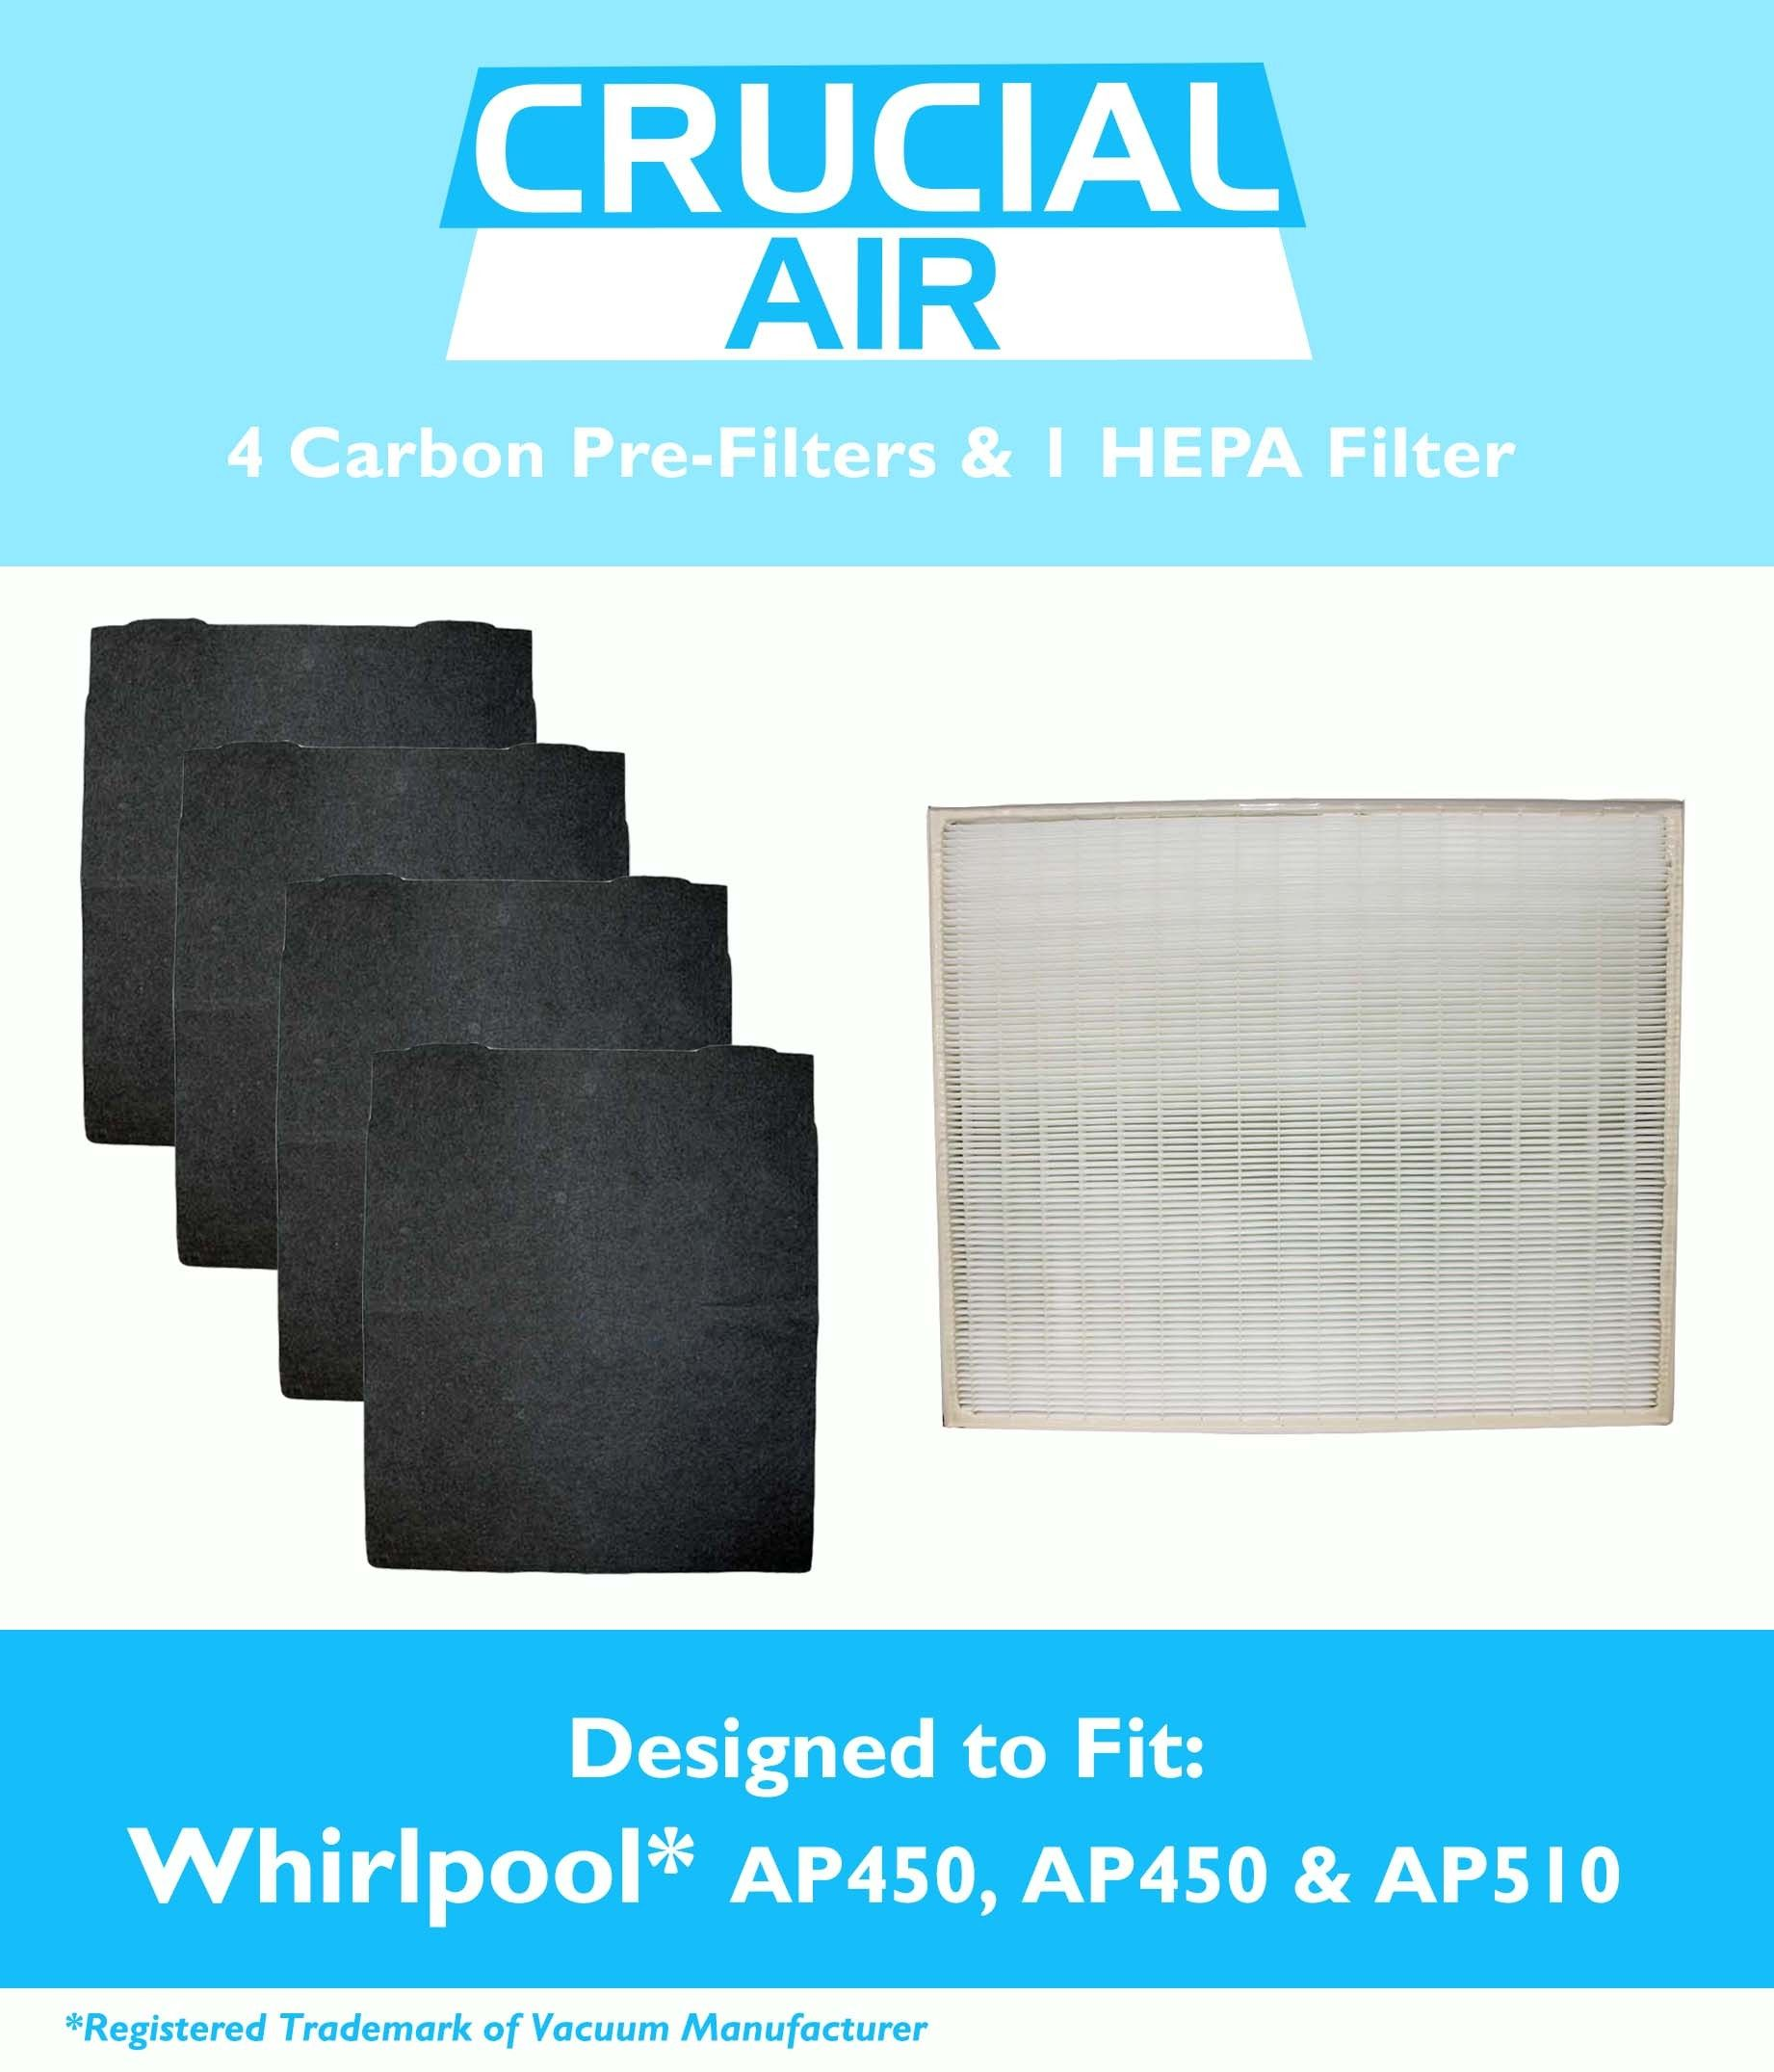 Large Whirlpool Air Purifier Hepa Air Purifier Filter 4 Odor Neutralizing Carbon Pre Filters P Filter Air Purifier Air Purifier Hepa Air Purifier